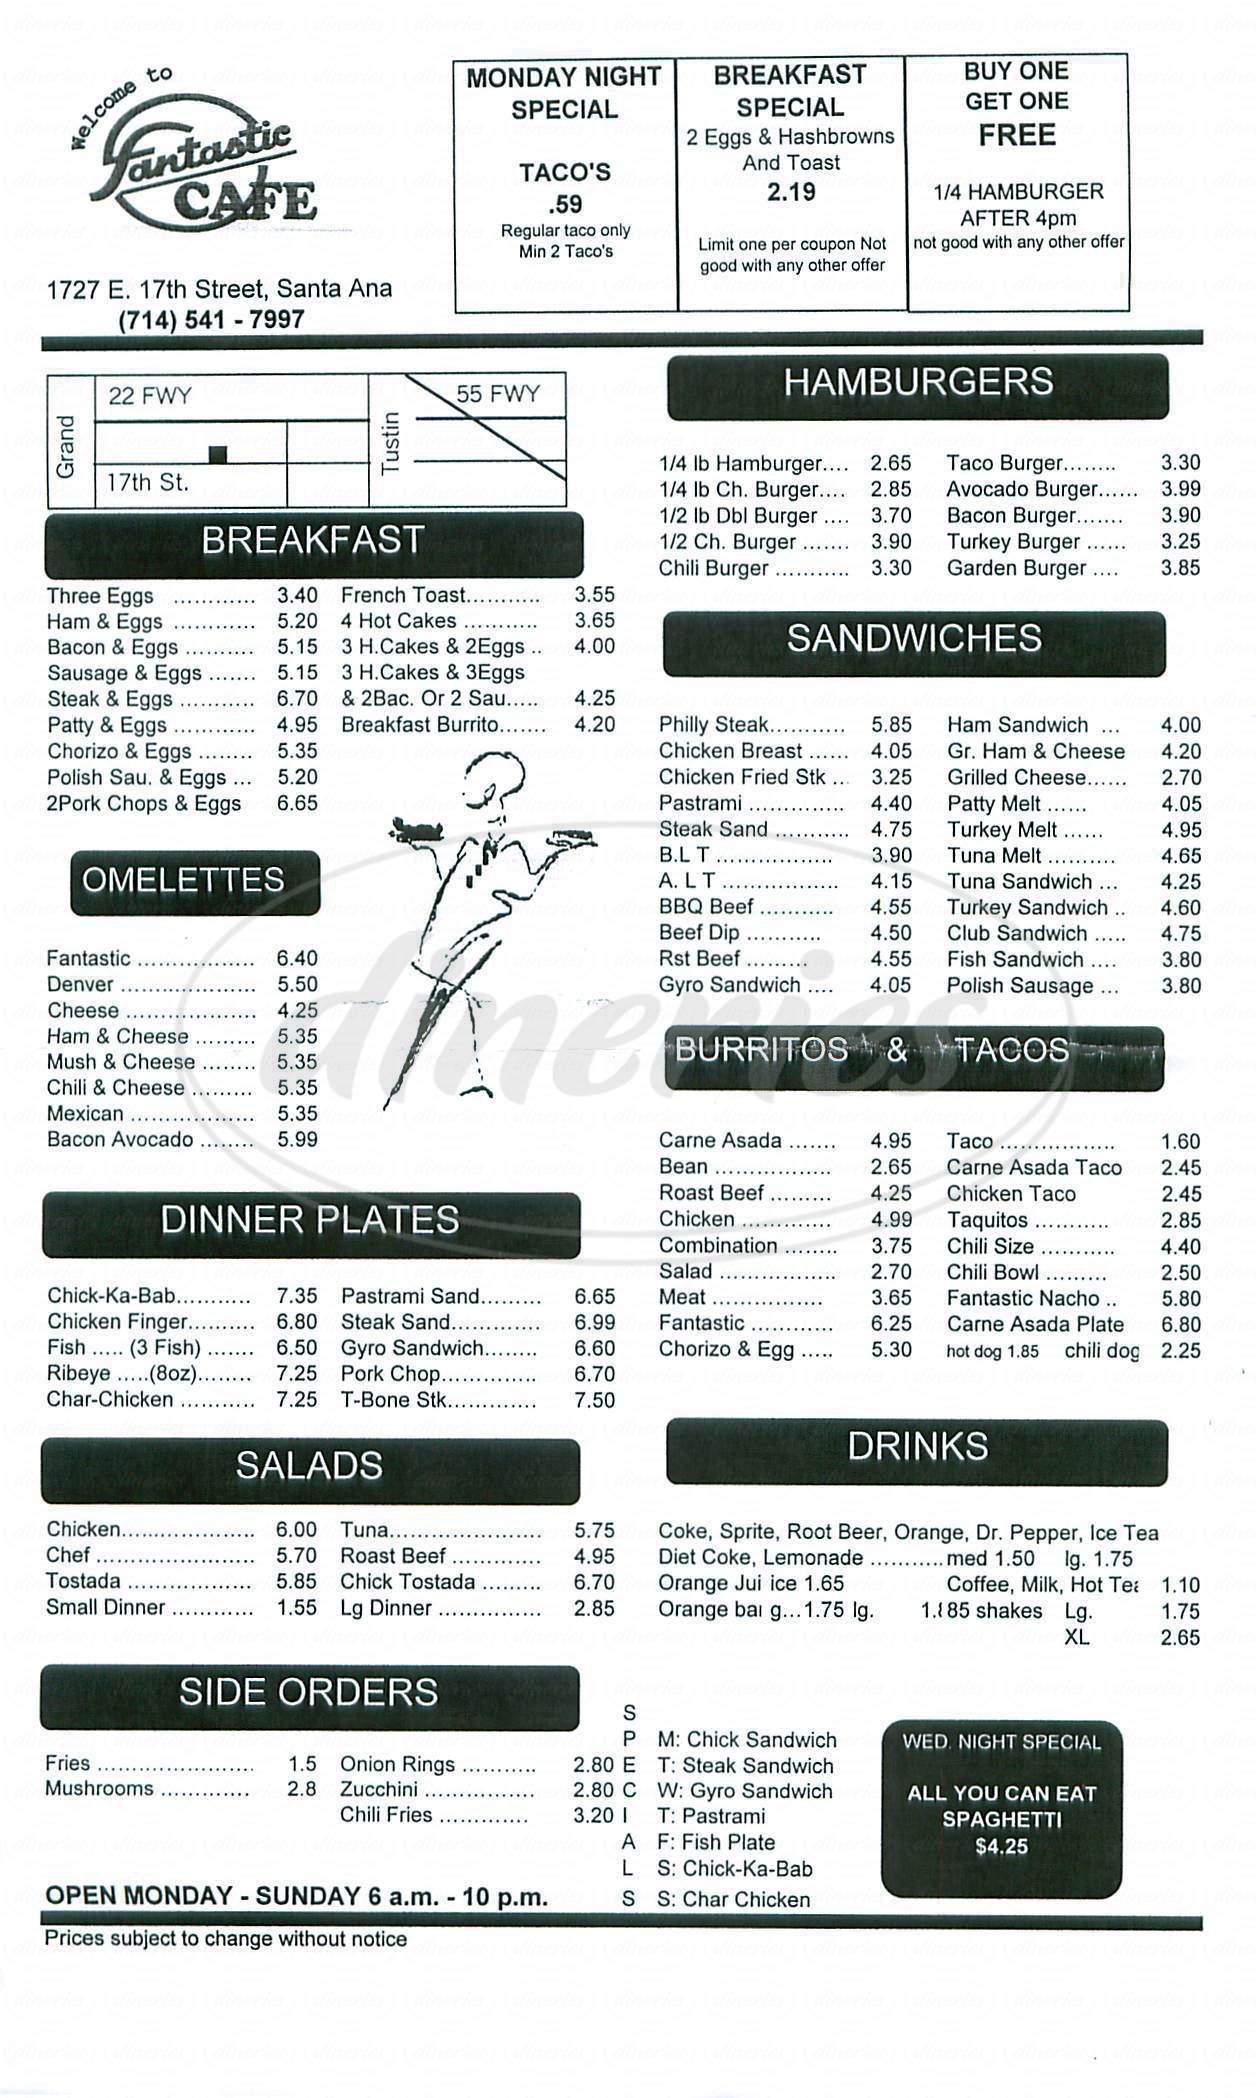 menu for Fantastic Café